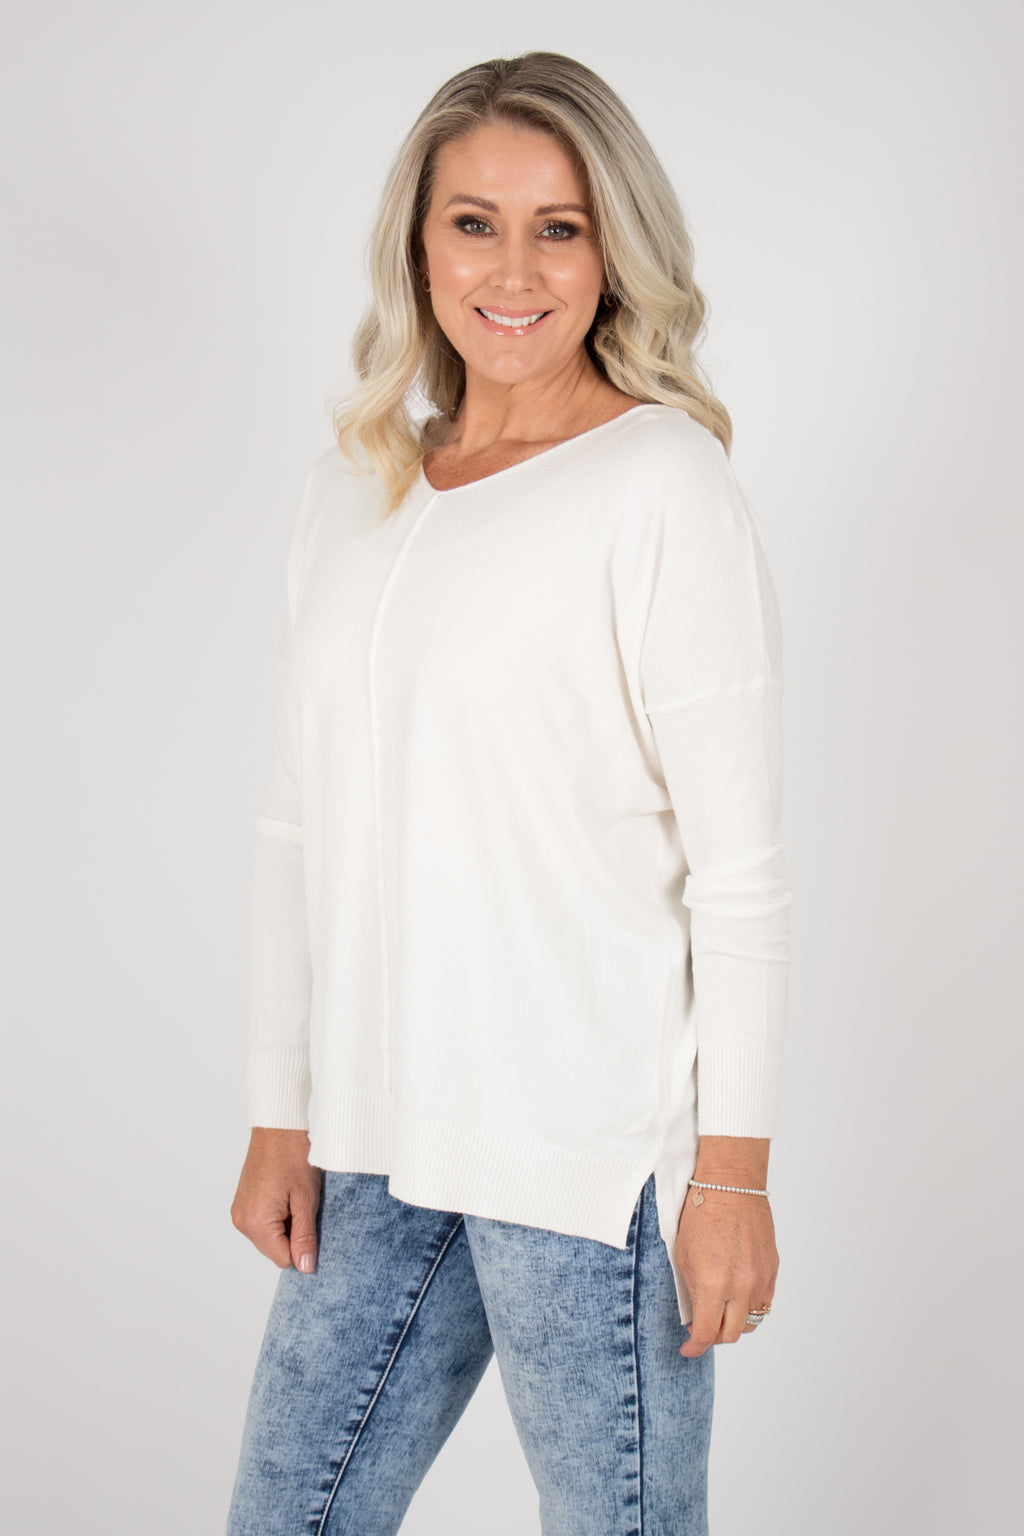 Jordene Knit Top in White